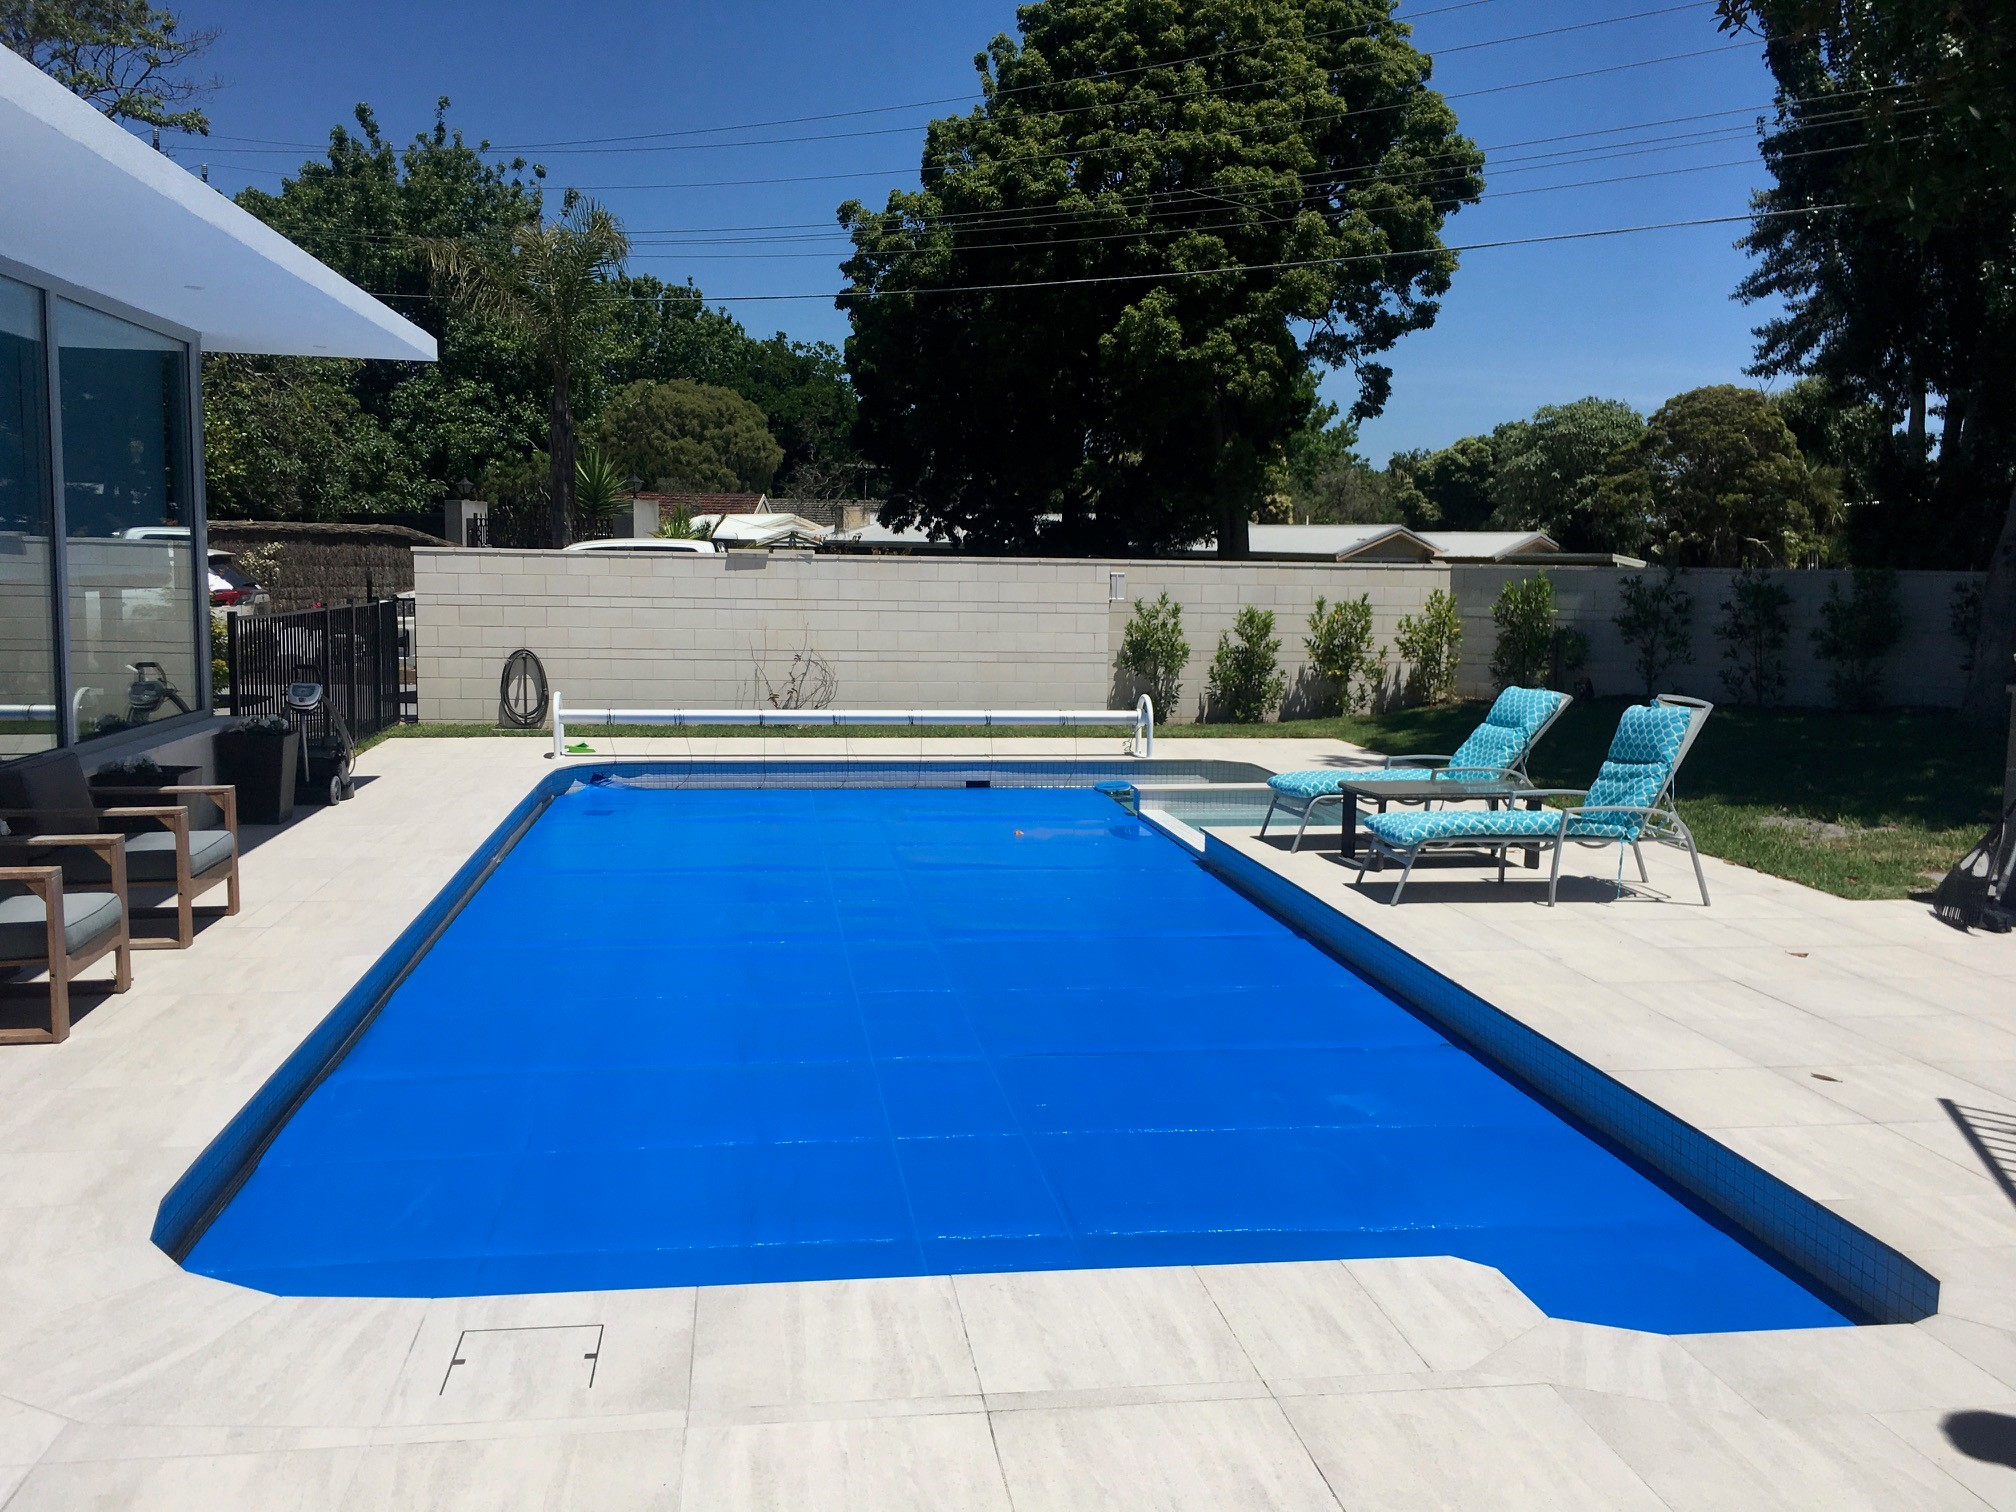 heavy Duty Auto pool cover roller in the backyard with deck chairs